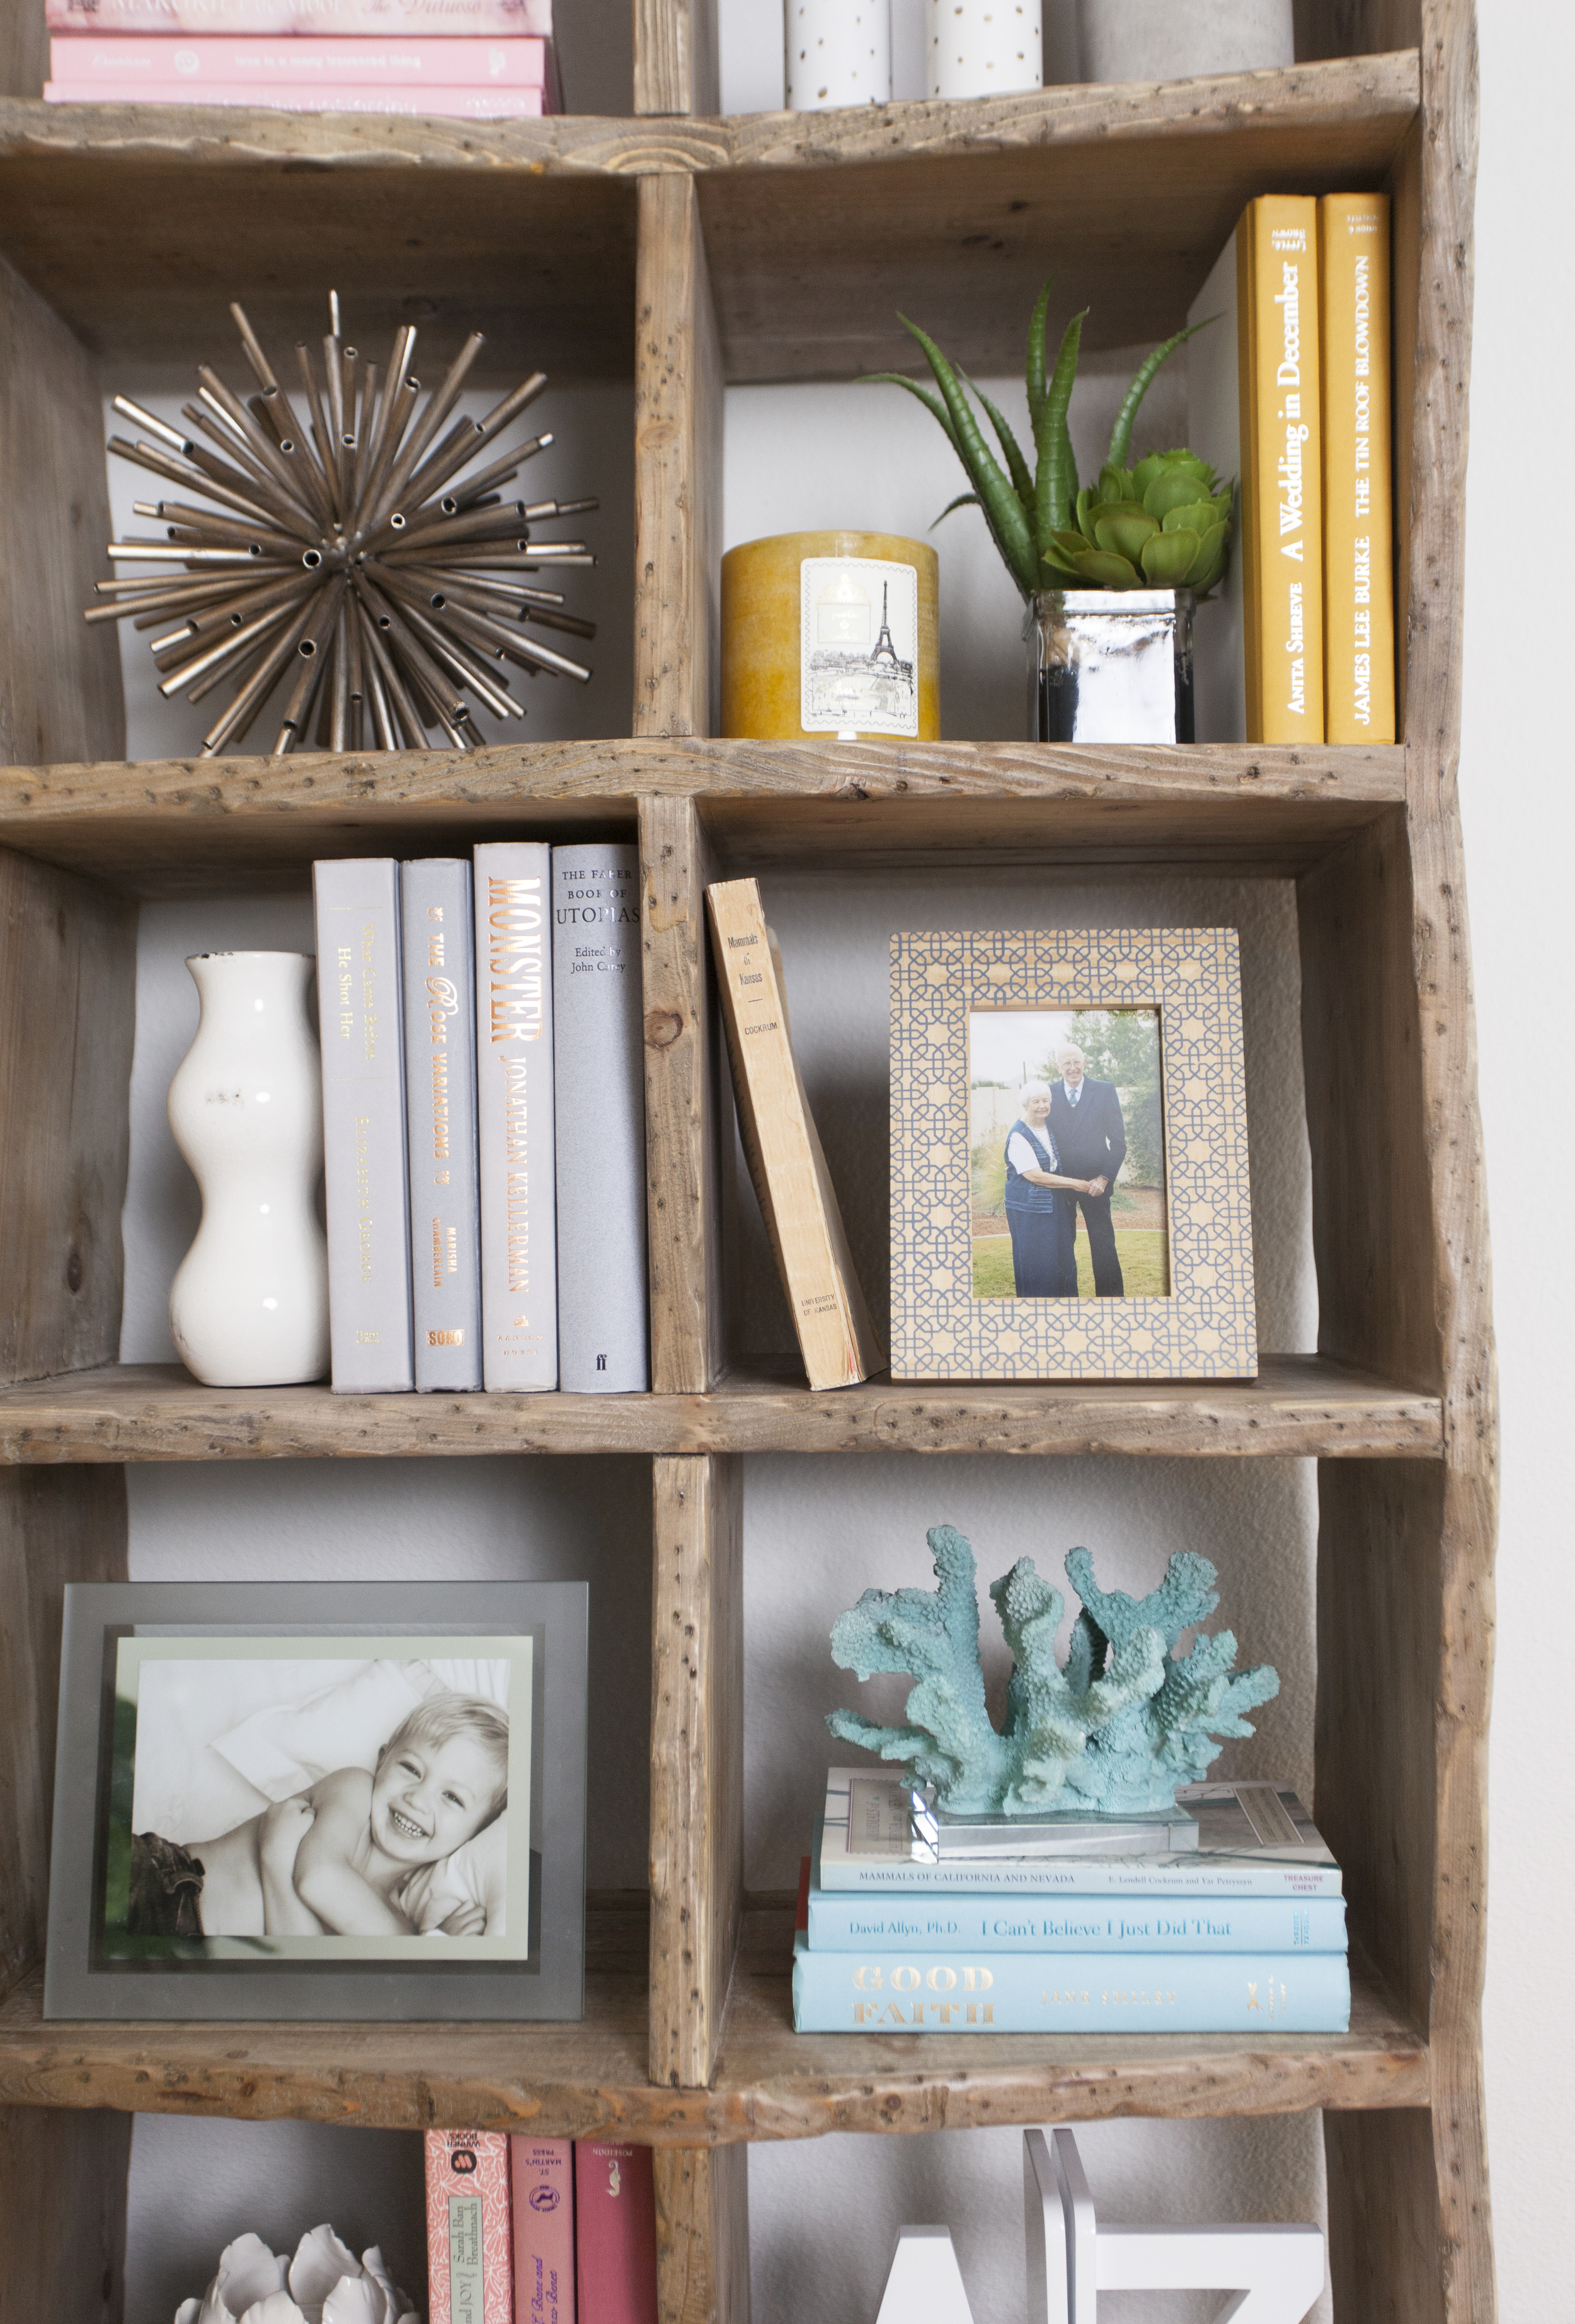 West Francis Bookcase